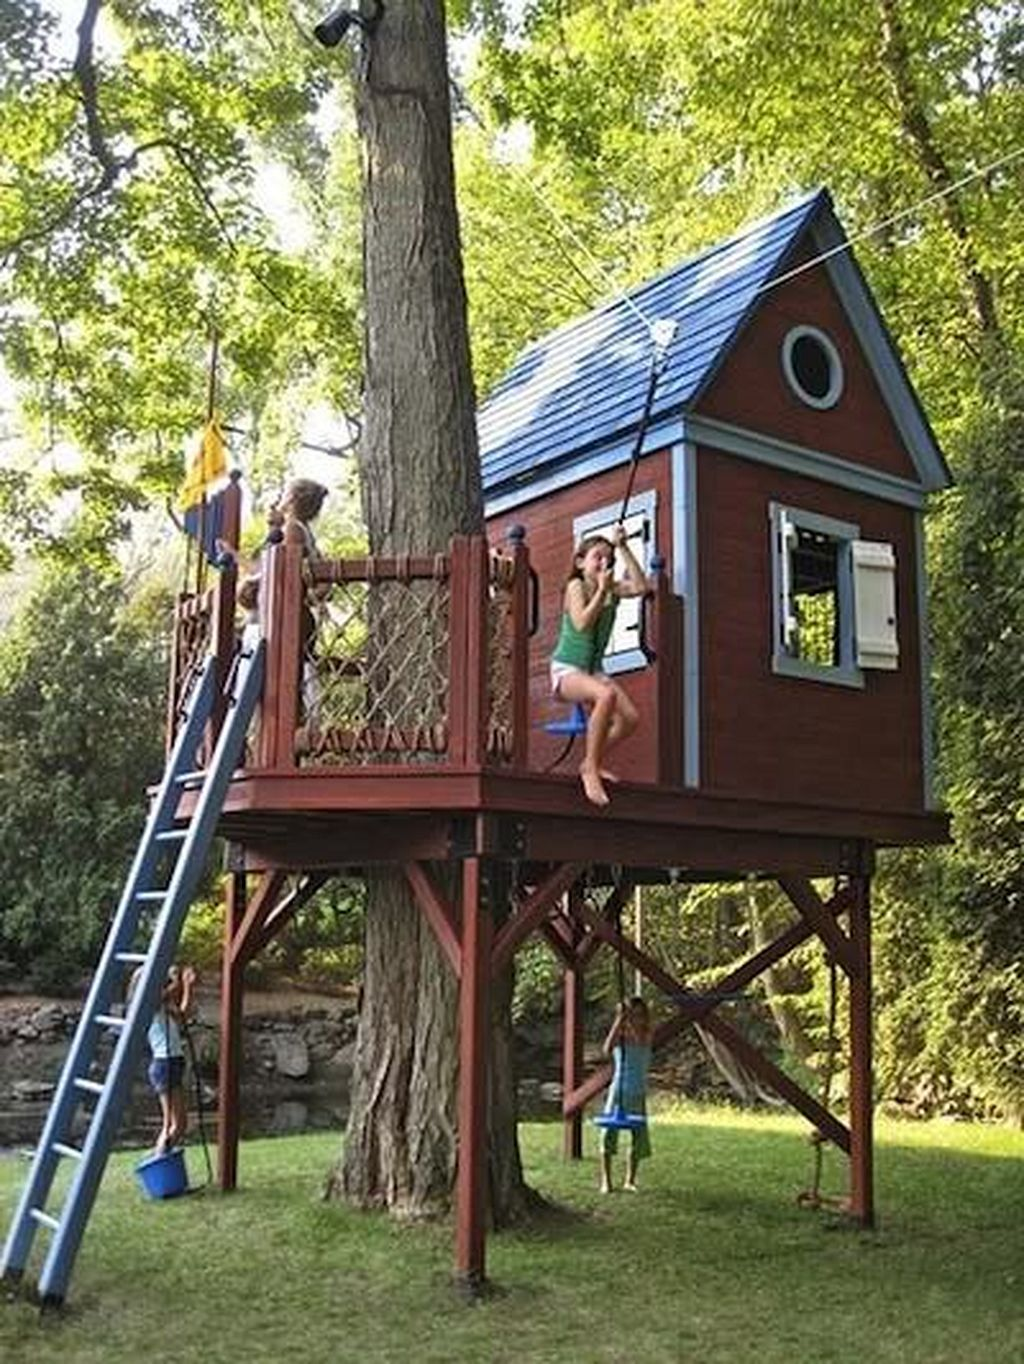 Nice Tree Houses 167 tree house design ideas your kids would love | tree house